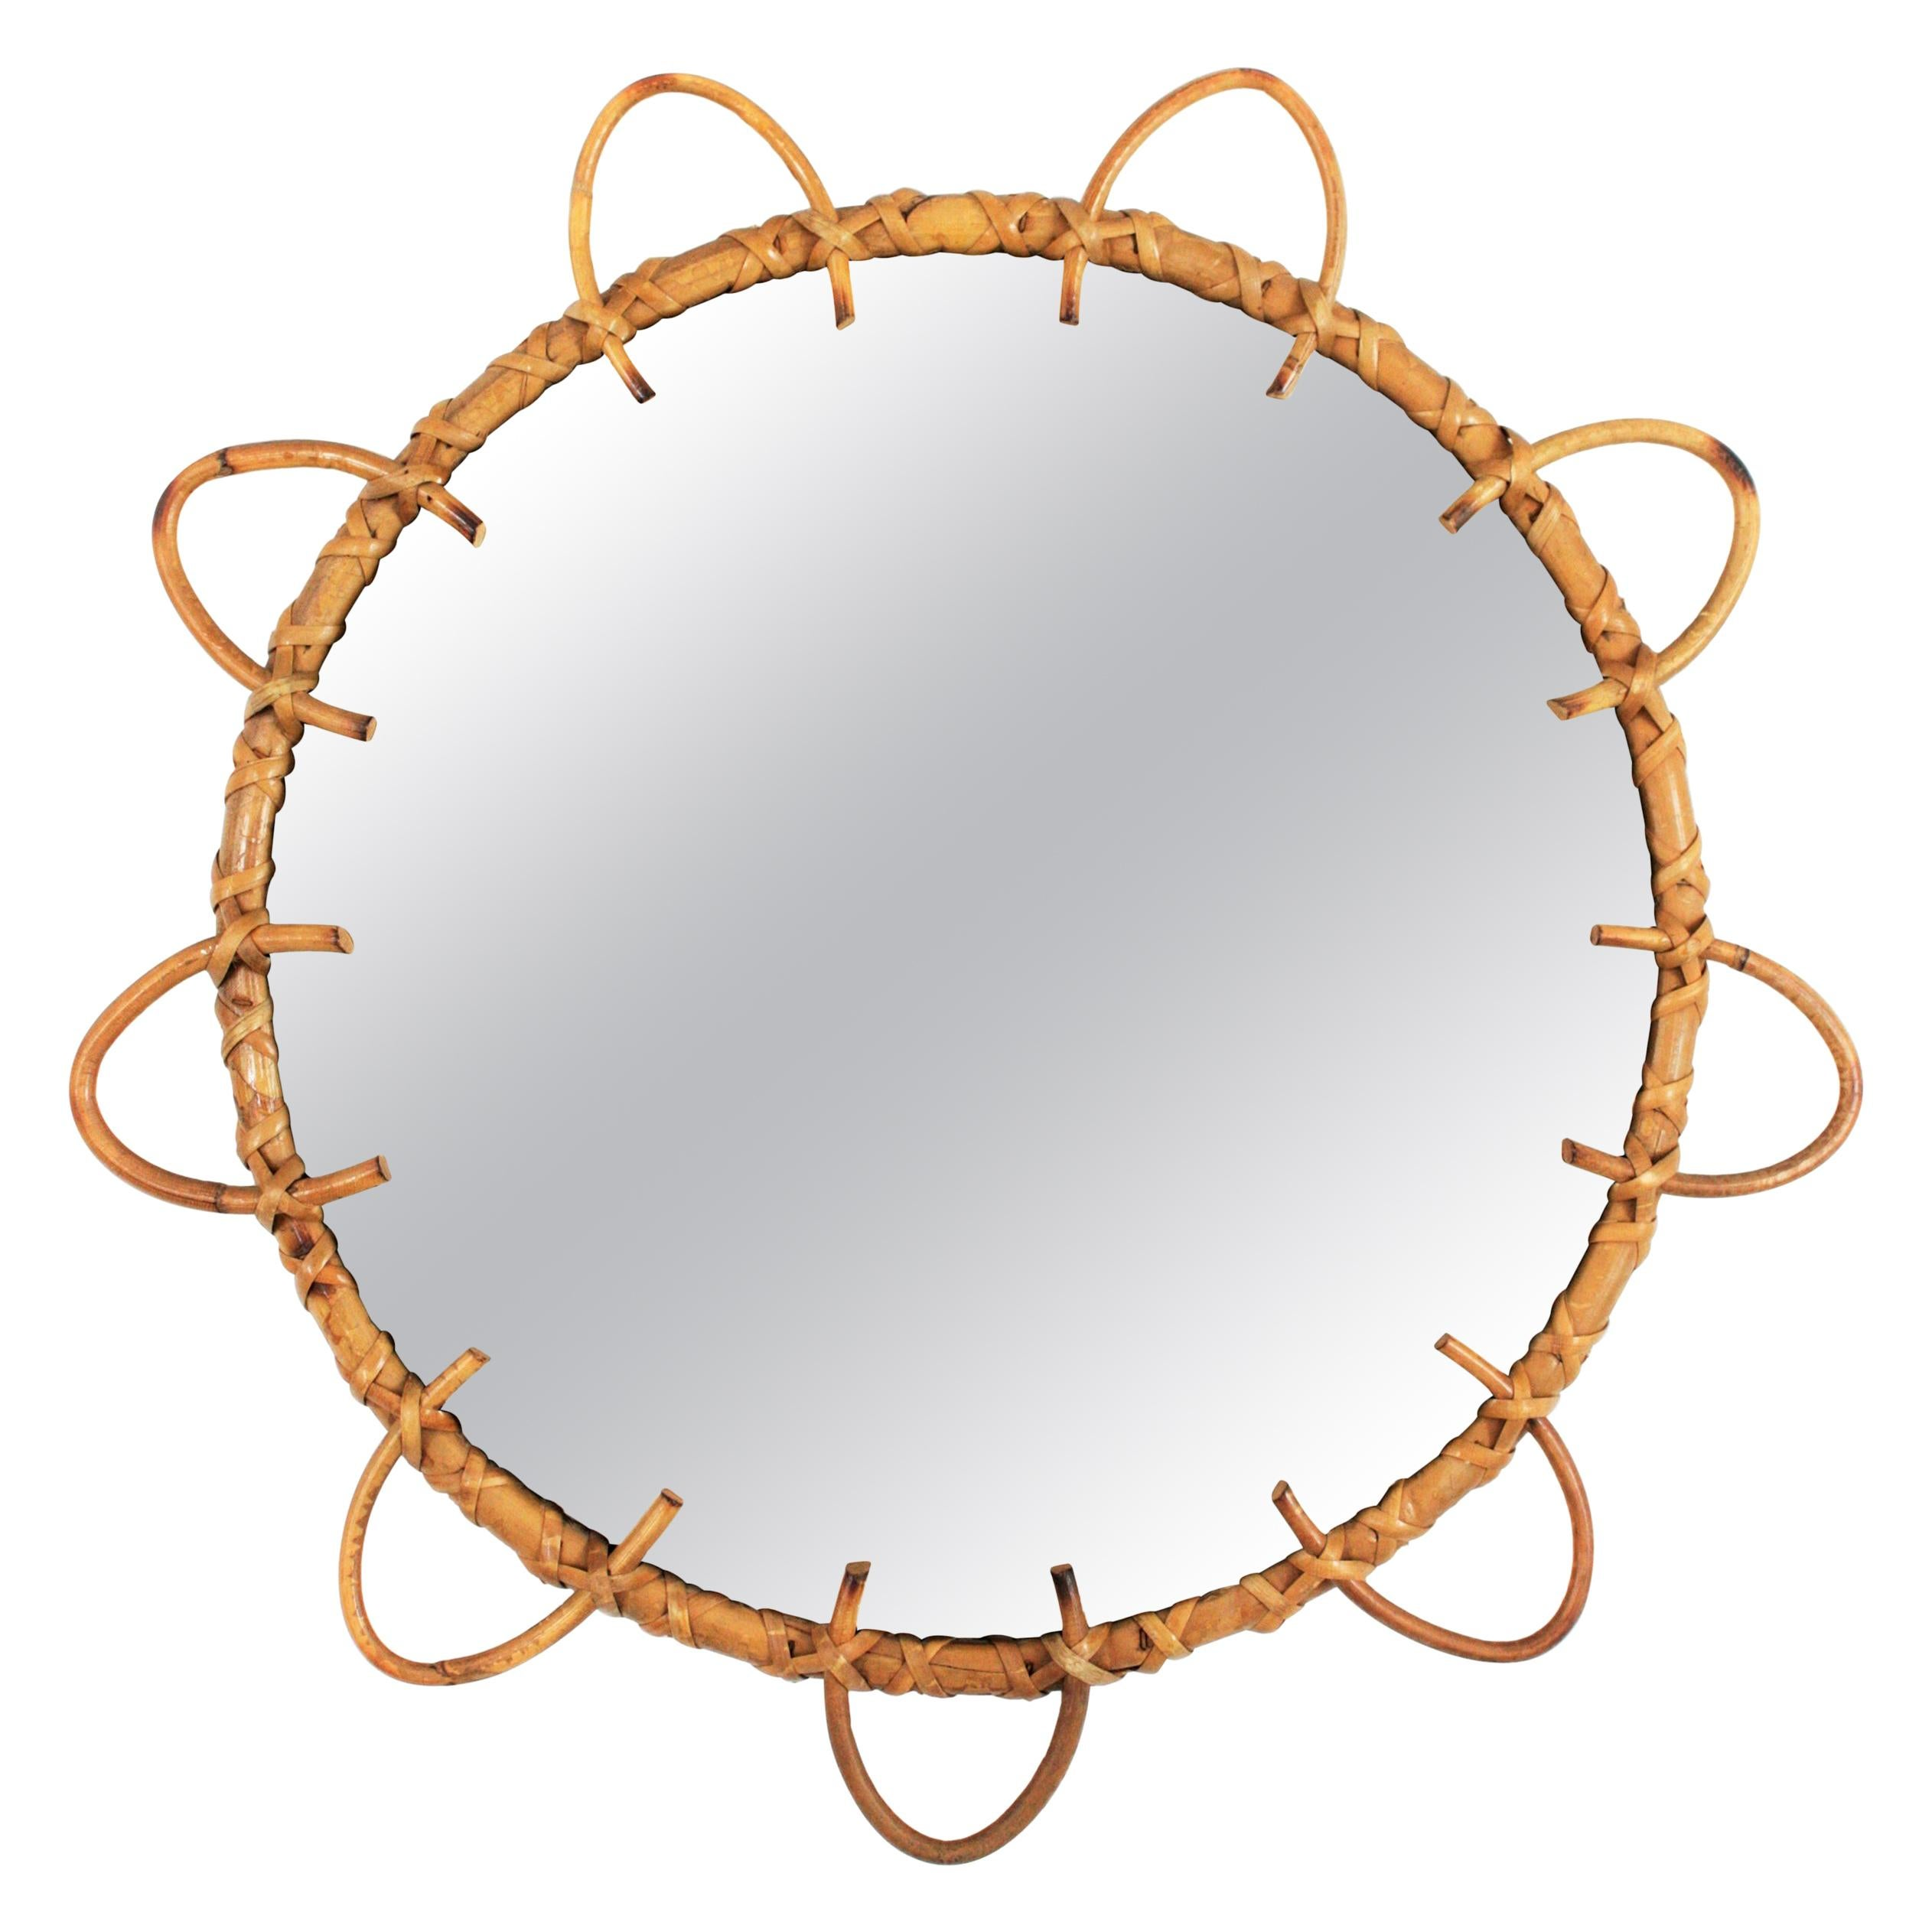 Spanish Modernist Rattan and Bamboo Flower Shaped Round Wall Mirror, 1960s